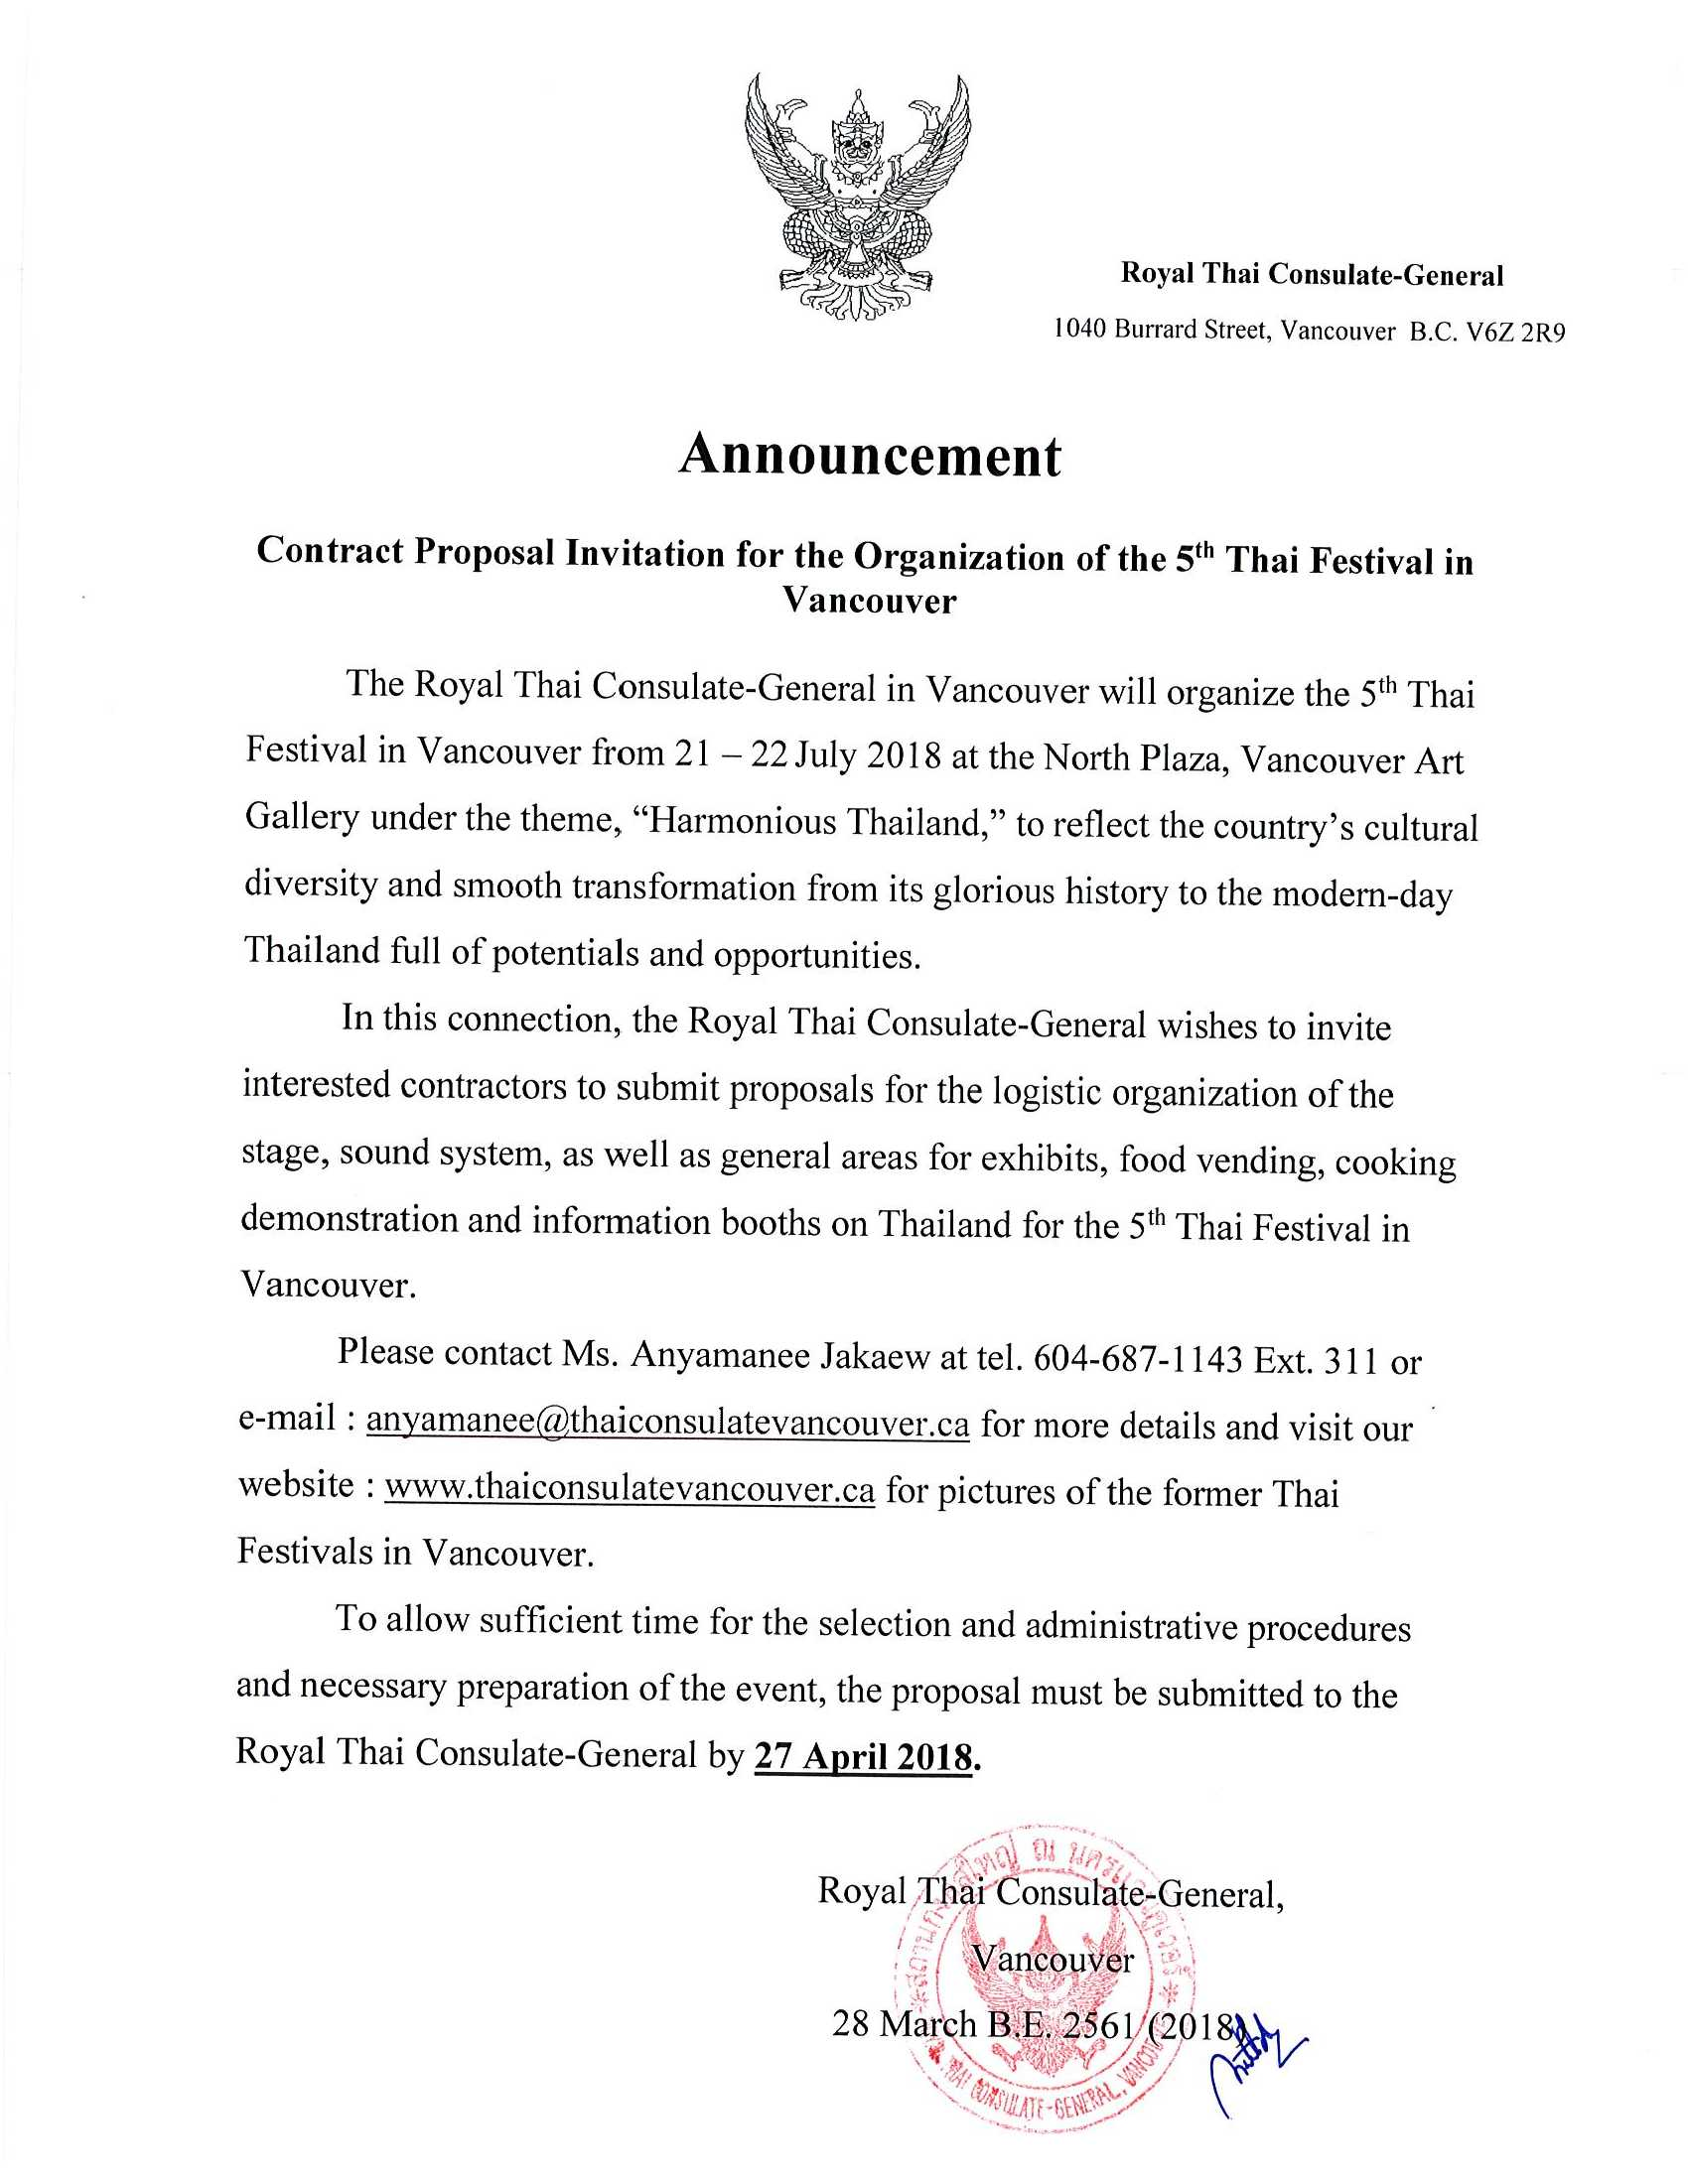 Announcement: Contract Proposal Invitation for Organization of the 5 Thai Festival in Vancouver